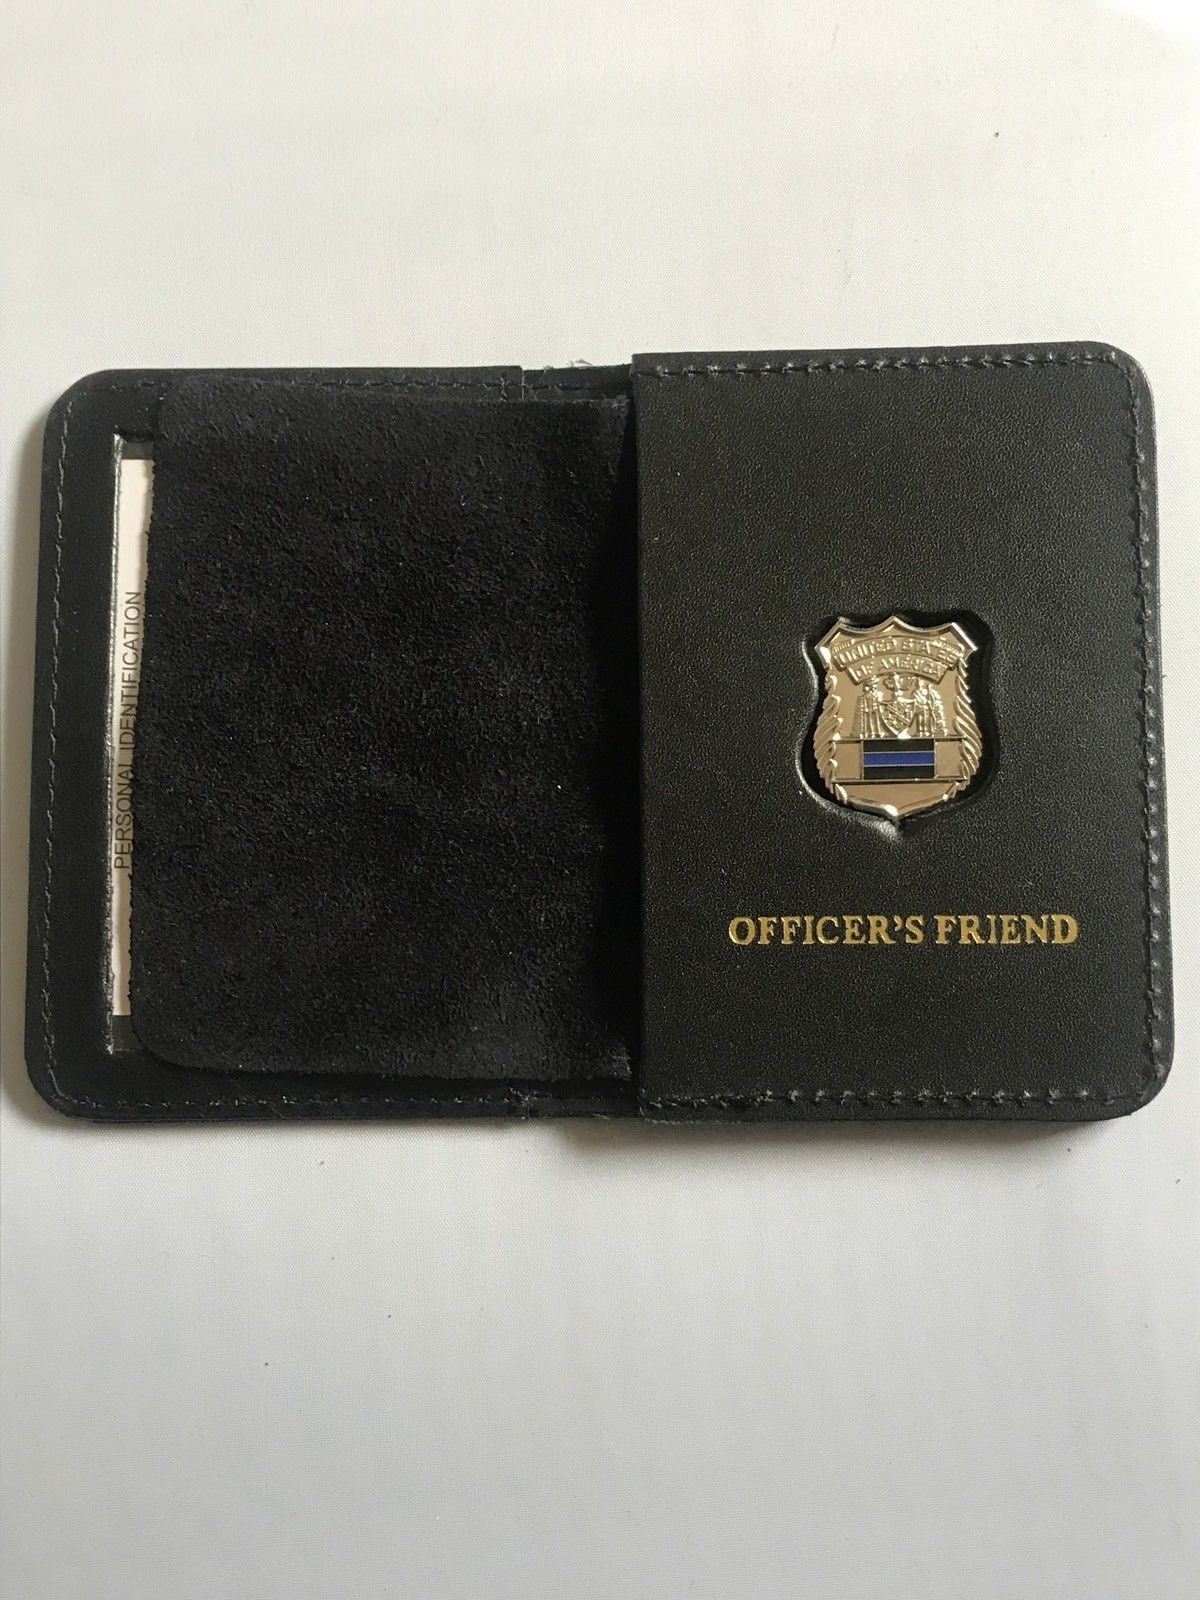 ff09ee848f84 Police Officer Friend Generic Mini Shield and 50 similar items